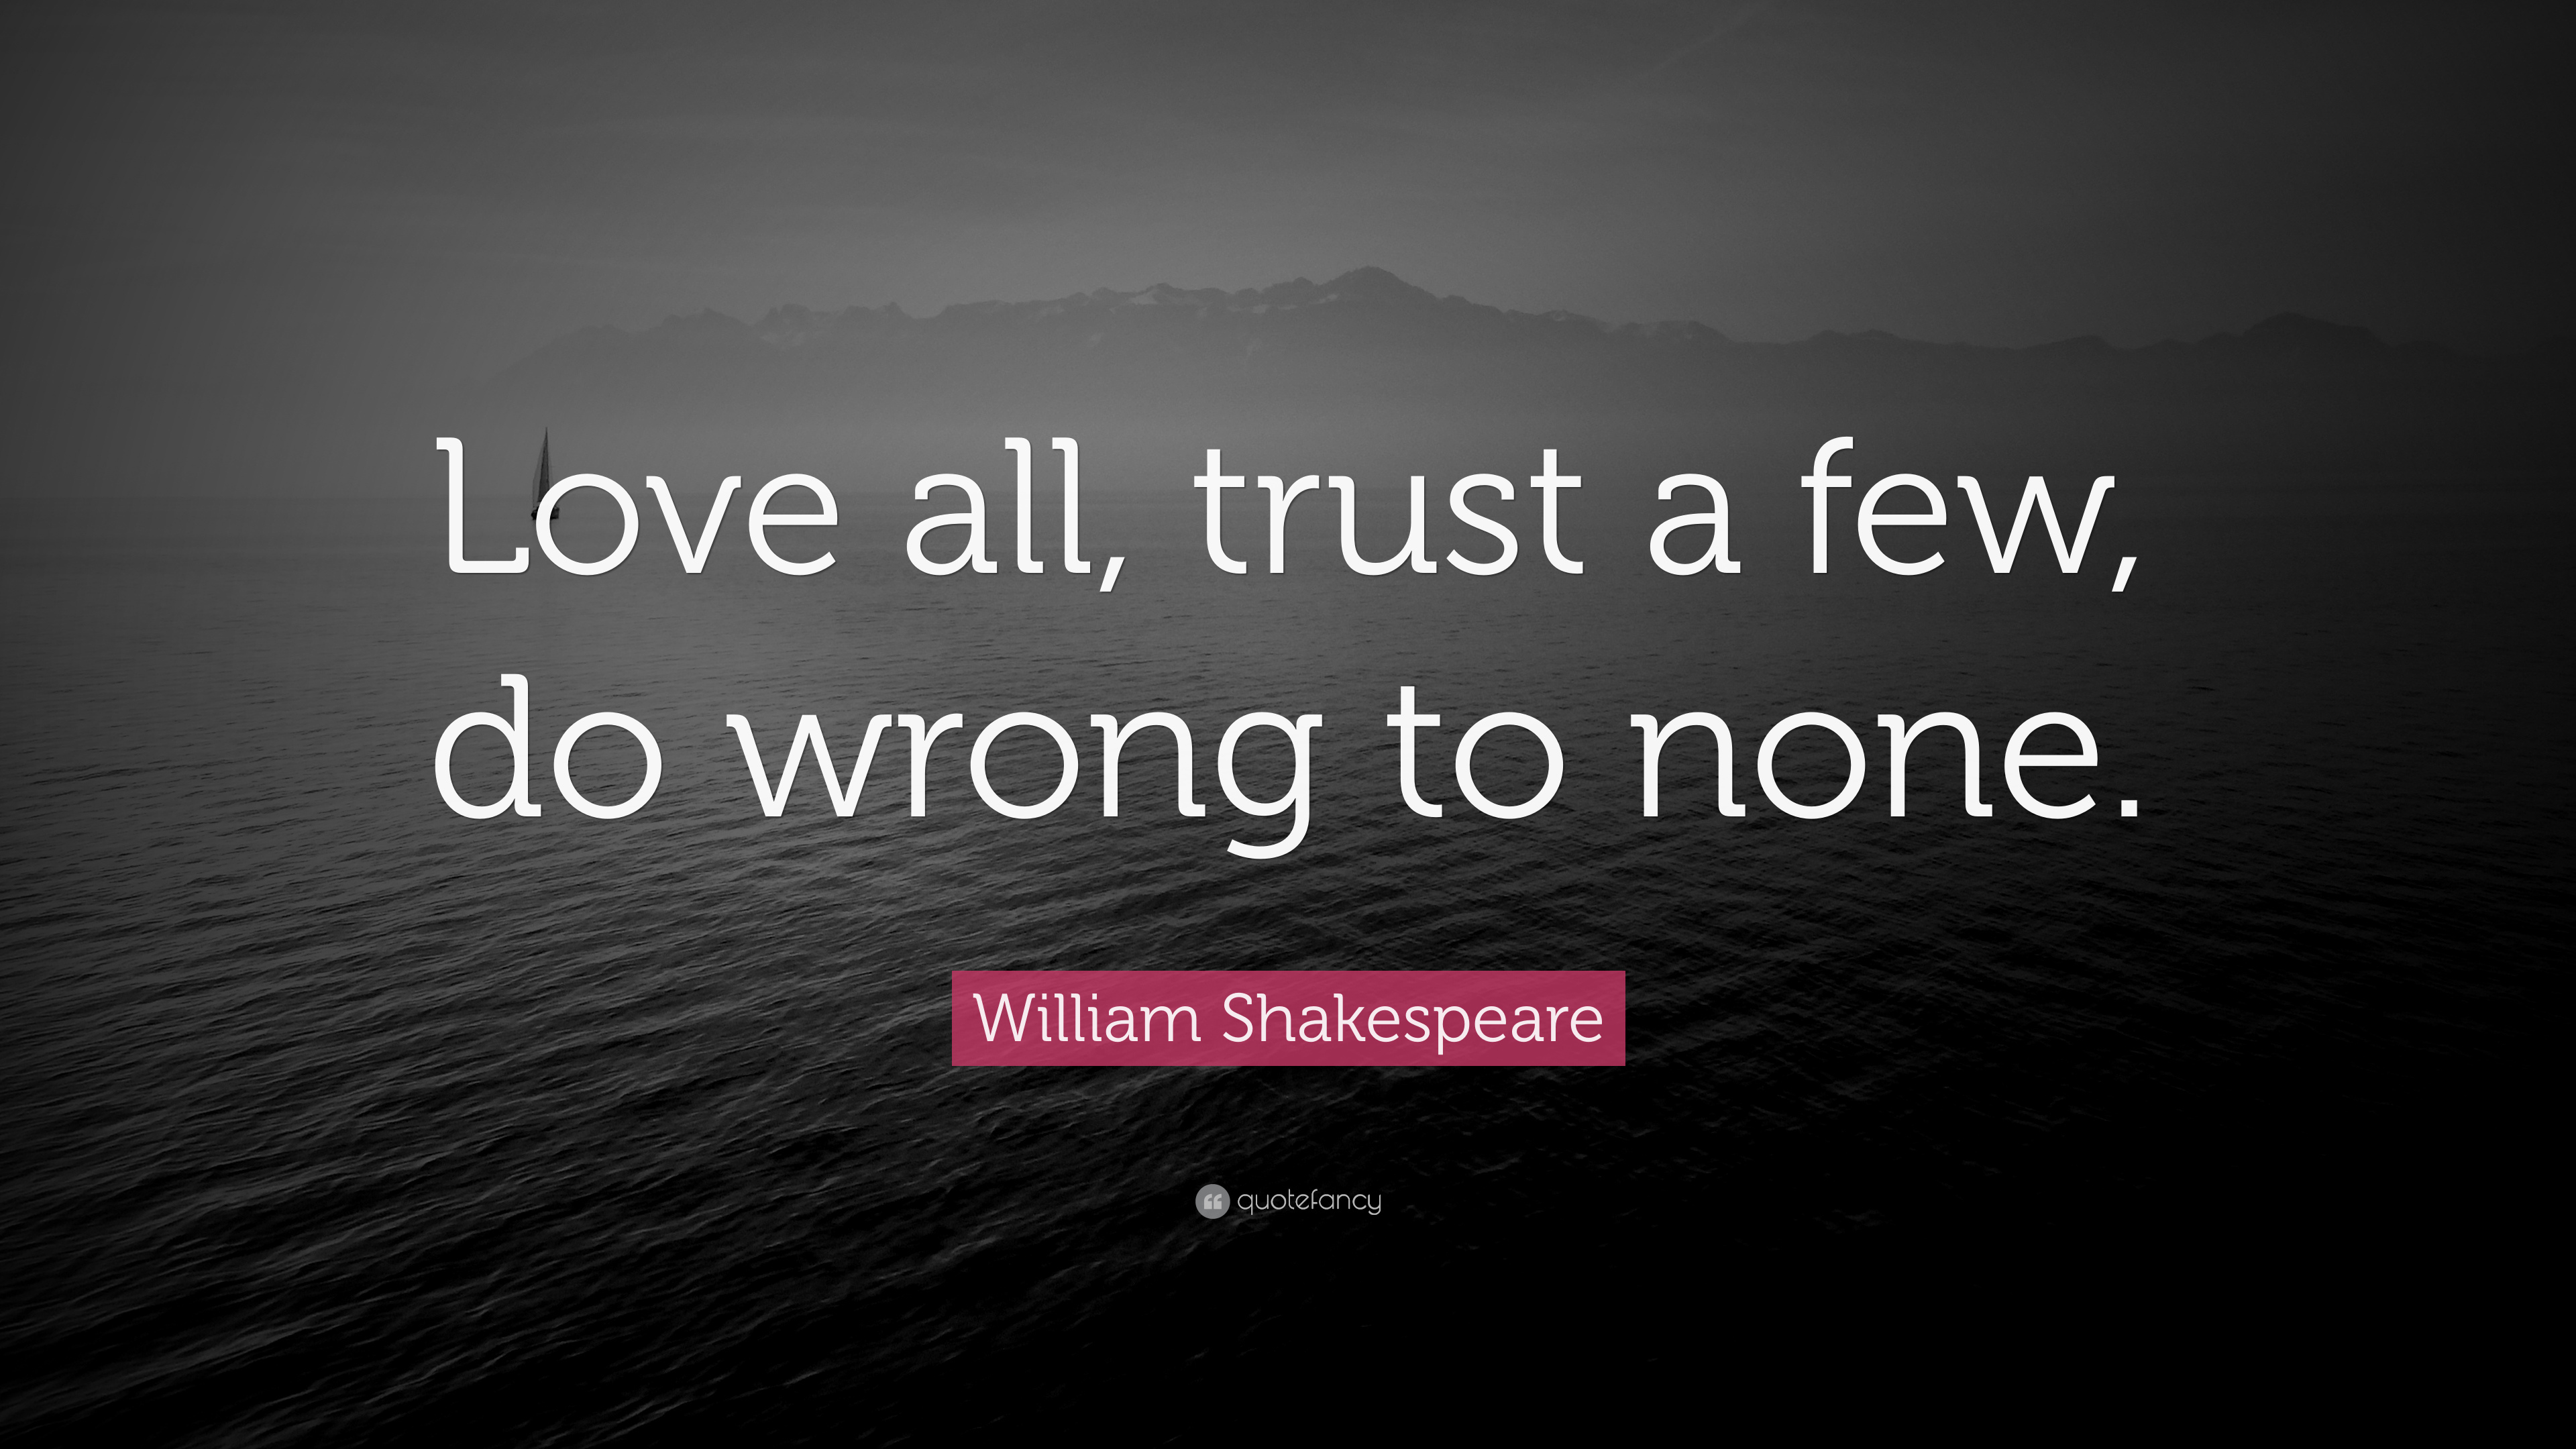 william shakespeare appreciate all of depend on any few